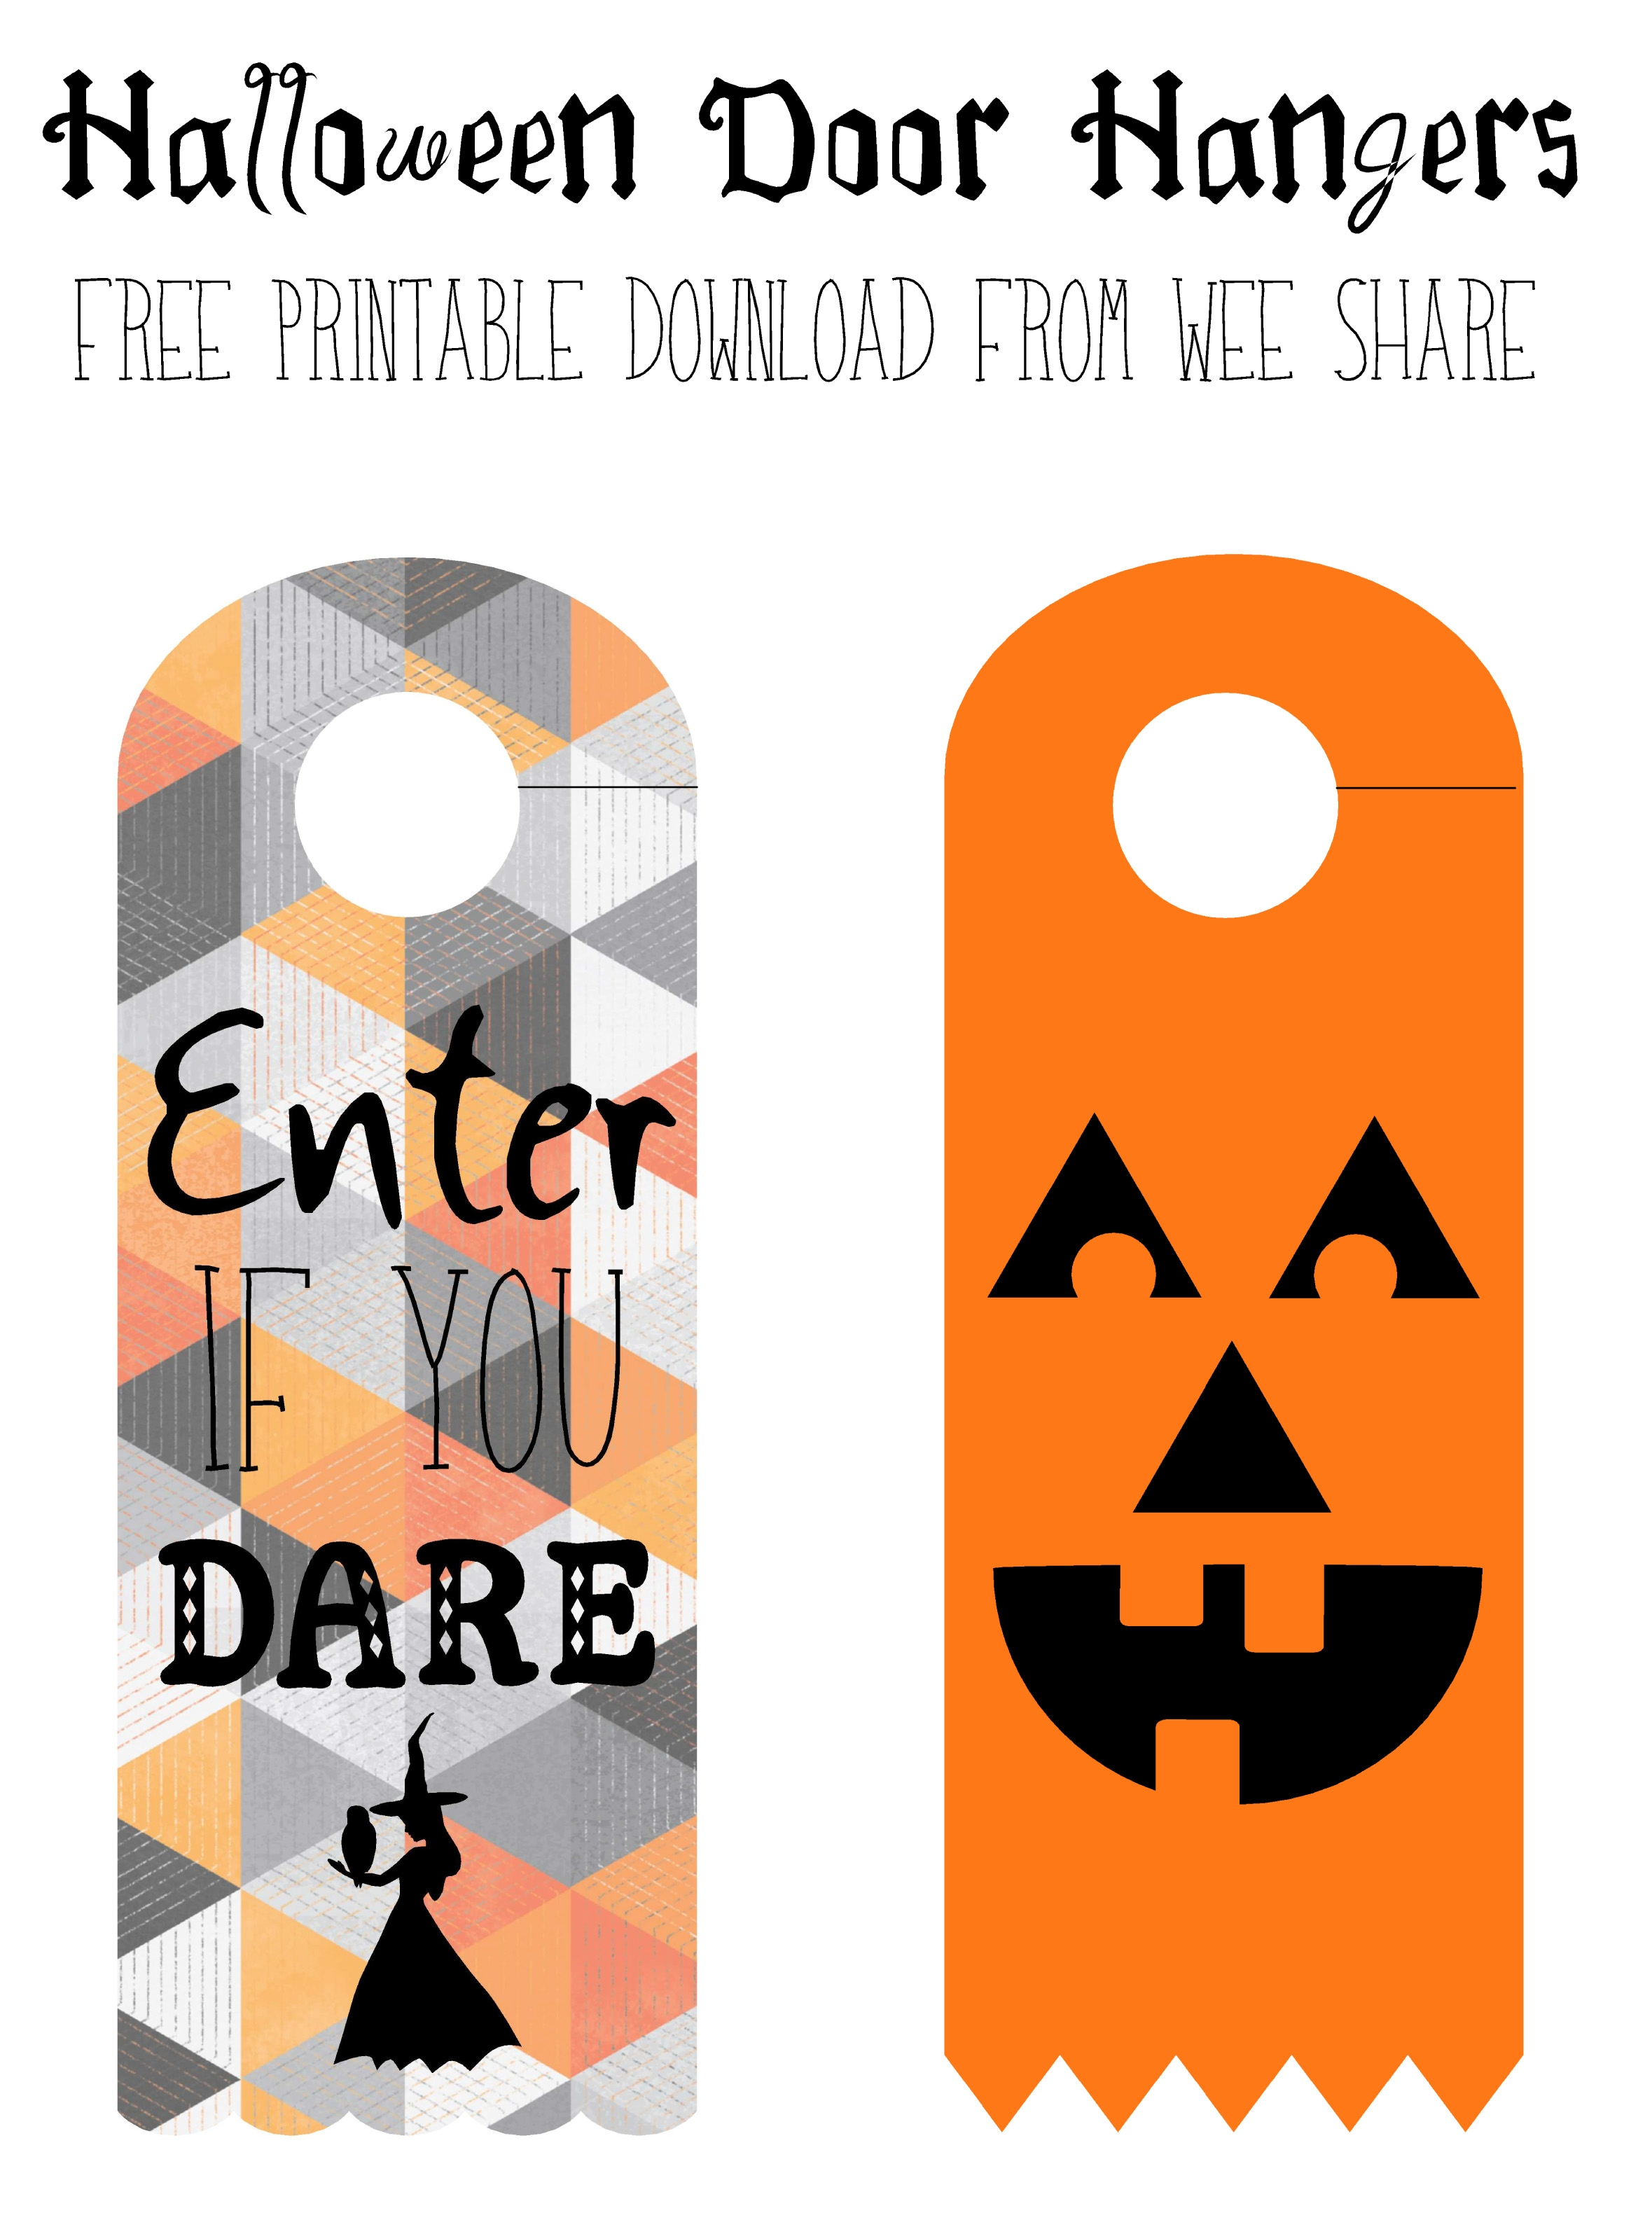 Halloween Door Knob Hanger Template Printable Halloween Door Hangers Free Download Wee Share 2359 X 3160